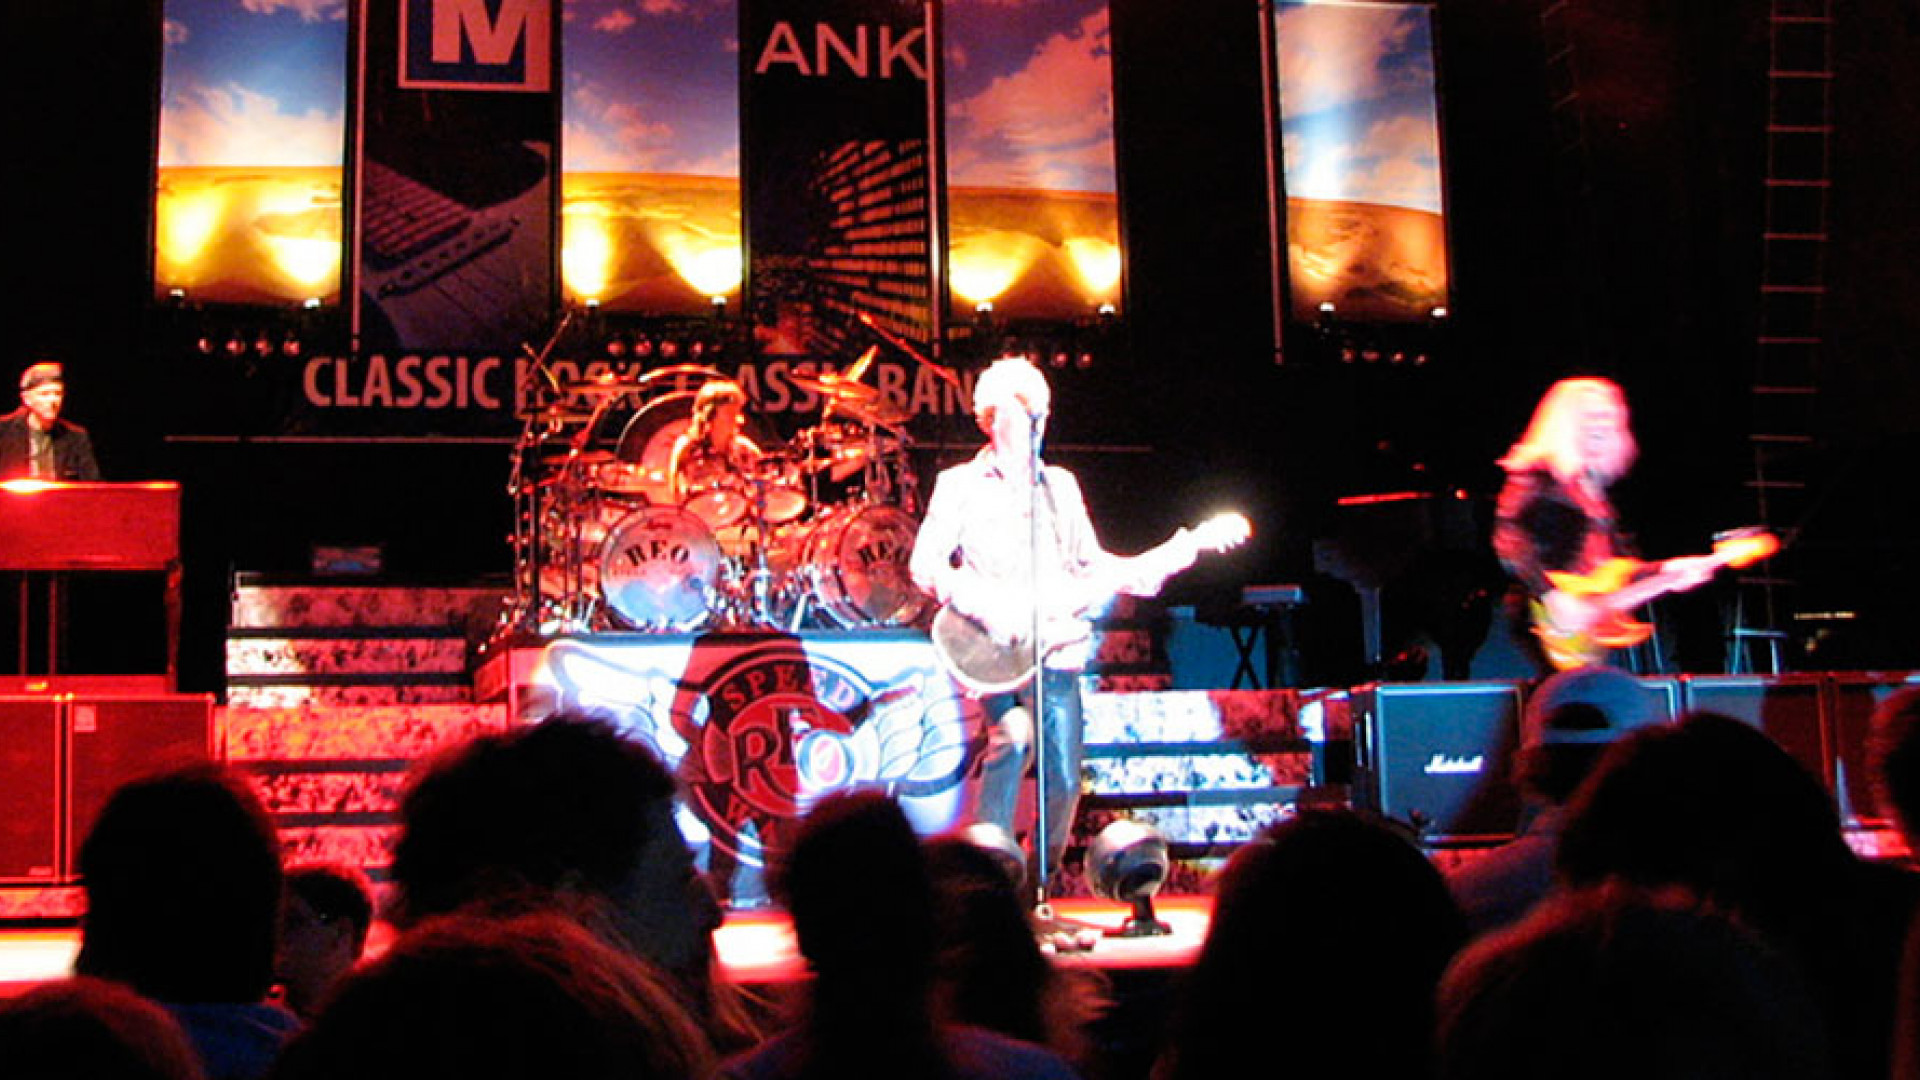 By Anna from Eagle, WI, USA (Summerfest 2007 - REO Speedwagon) CC-BY-2.0